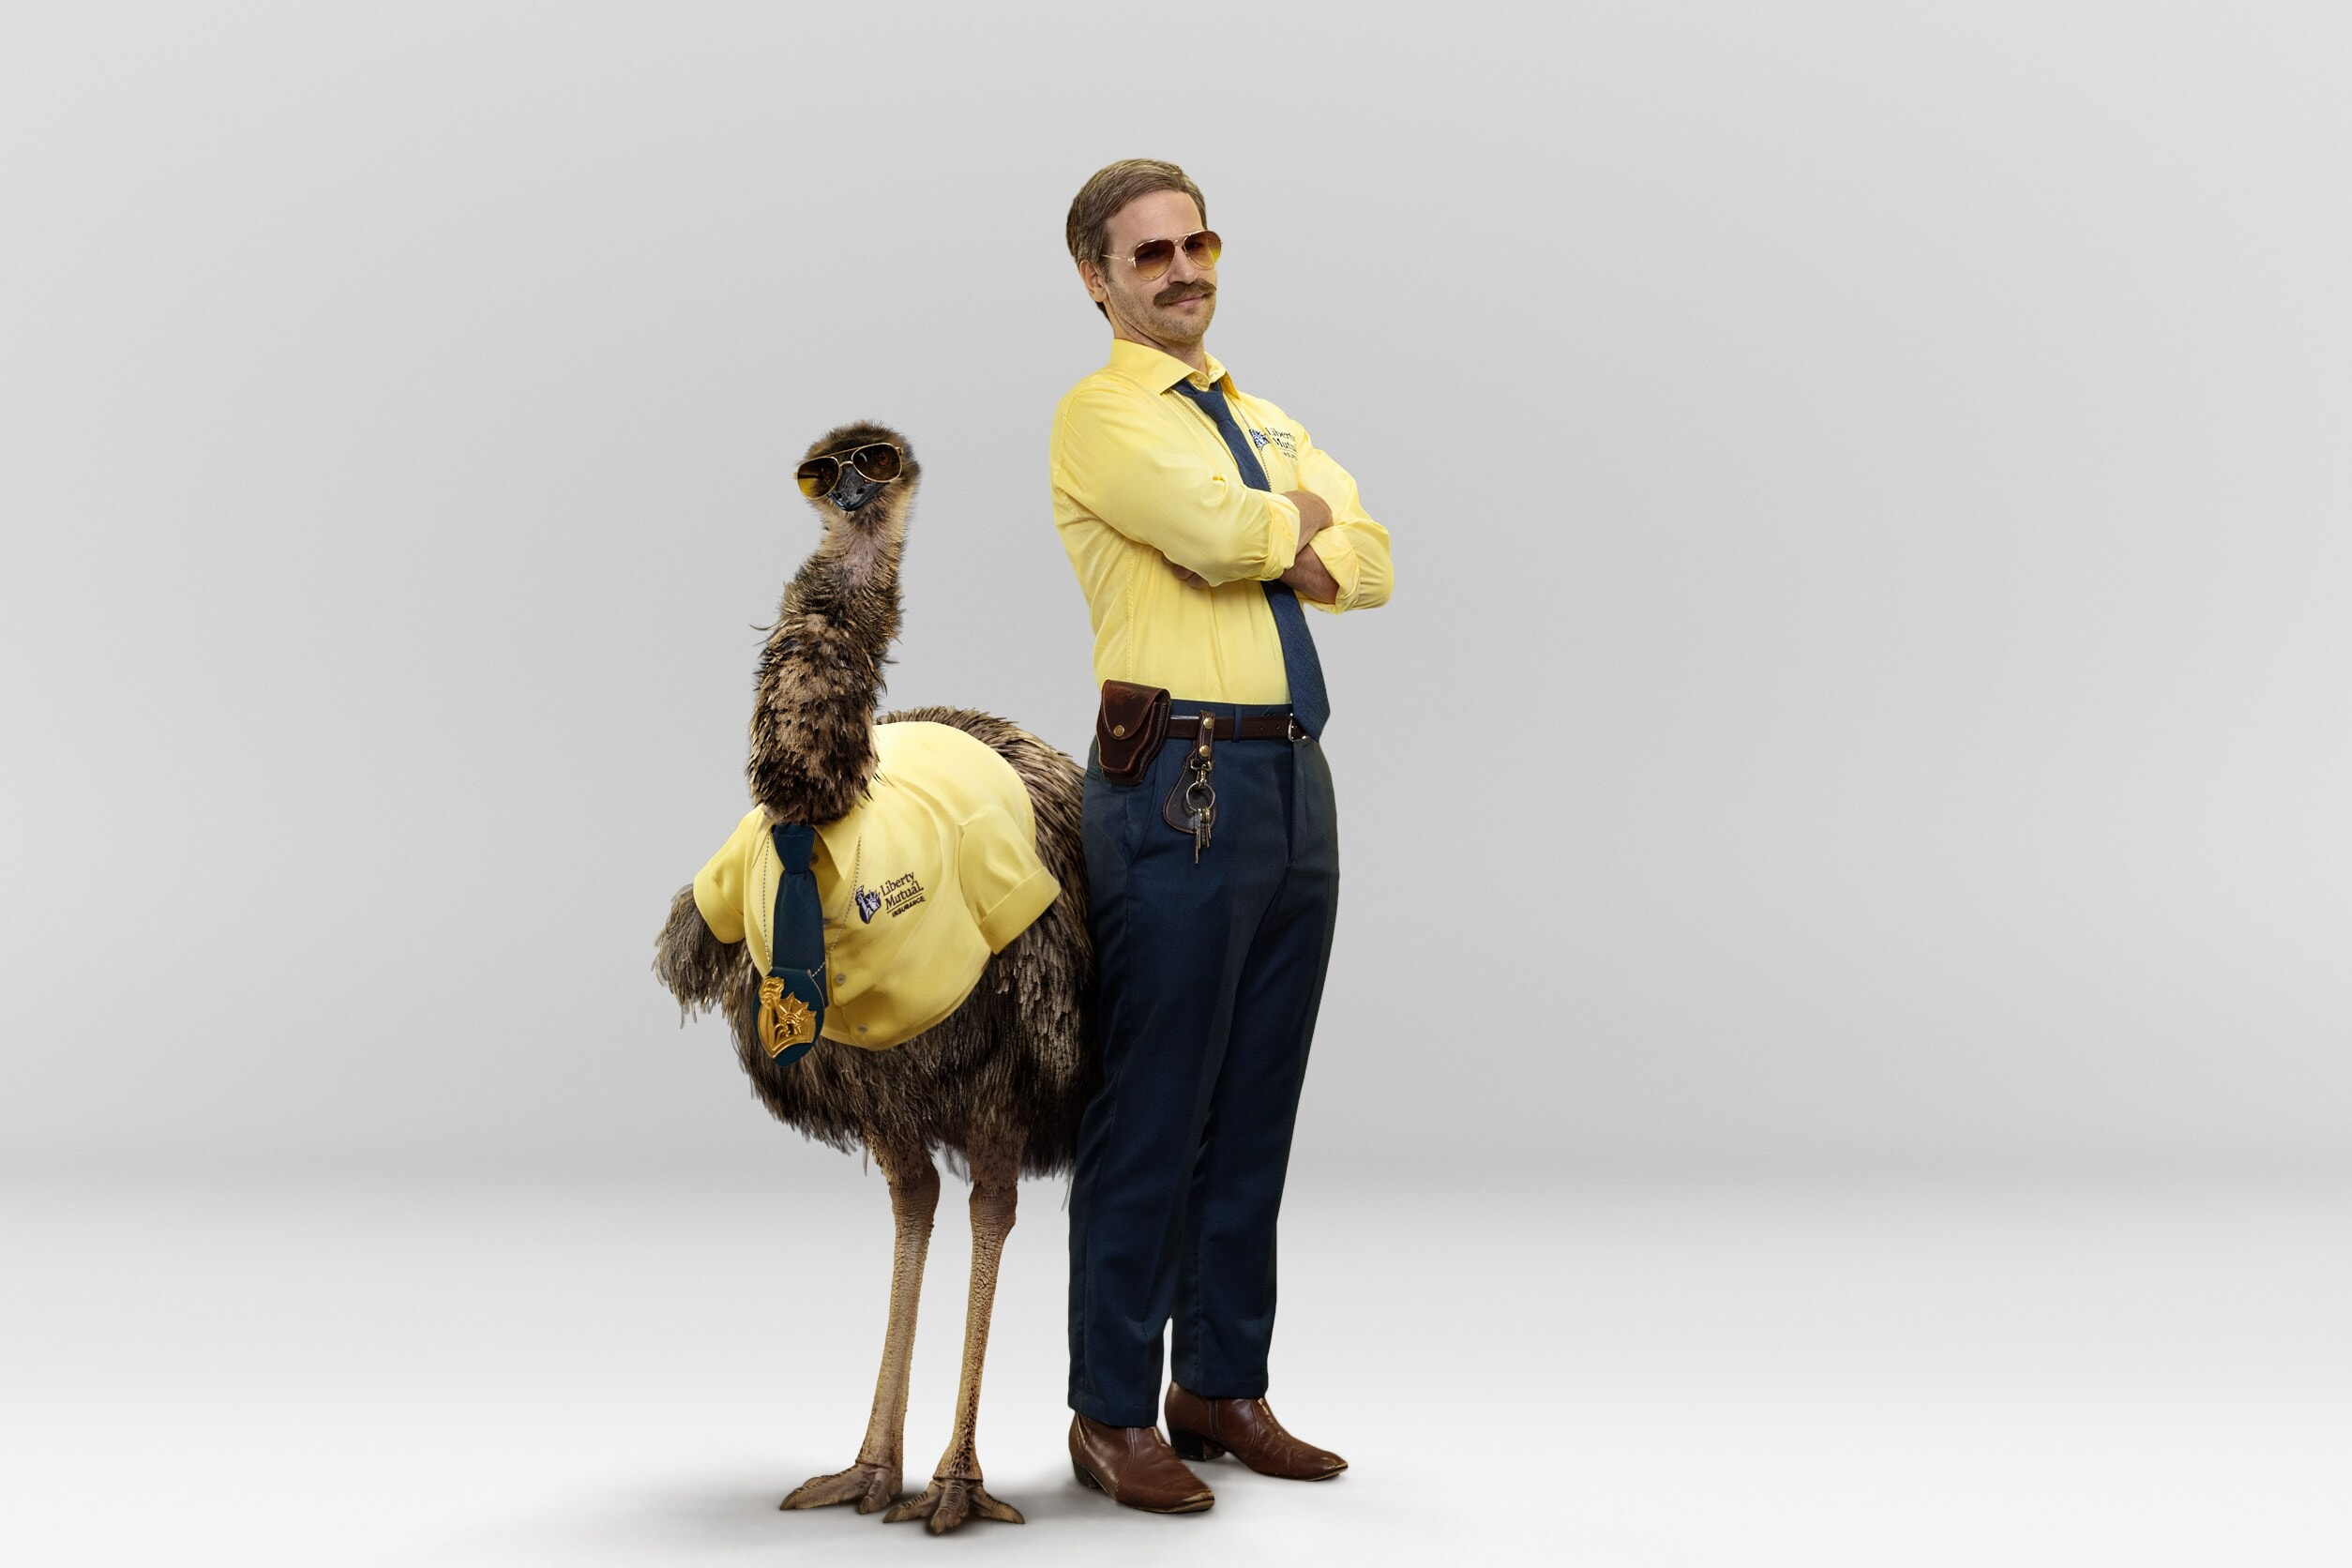 Picture of emu and person